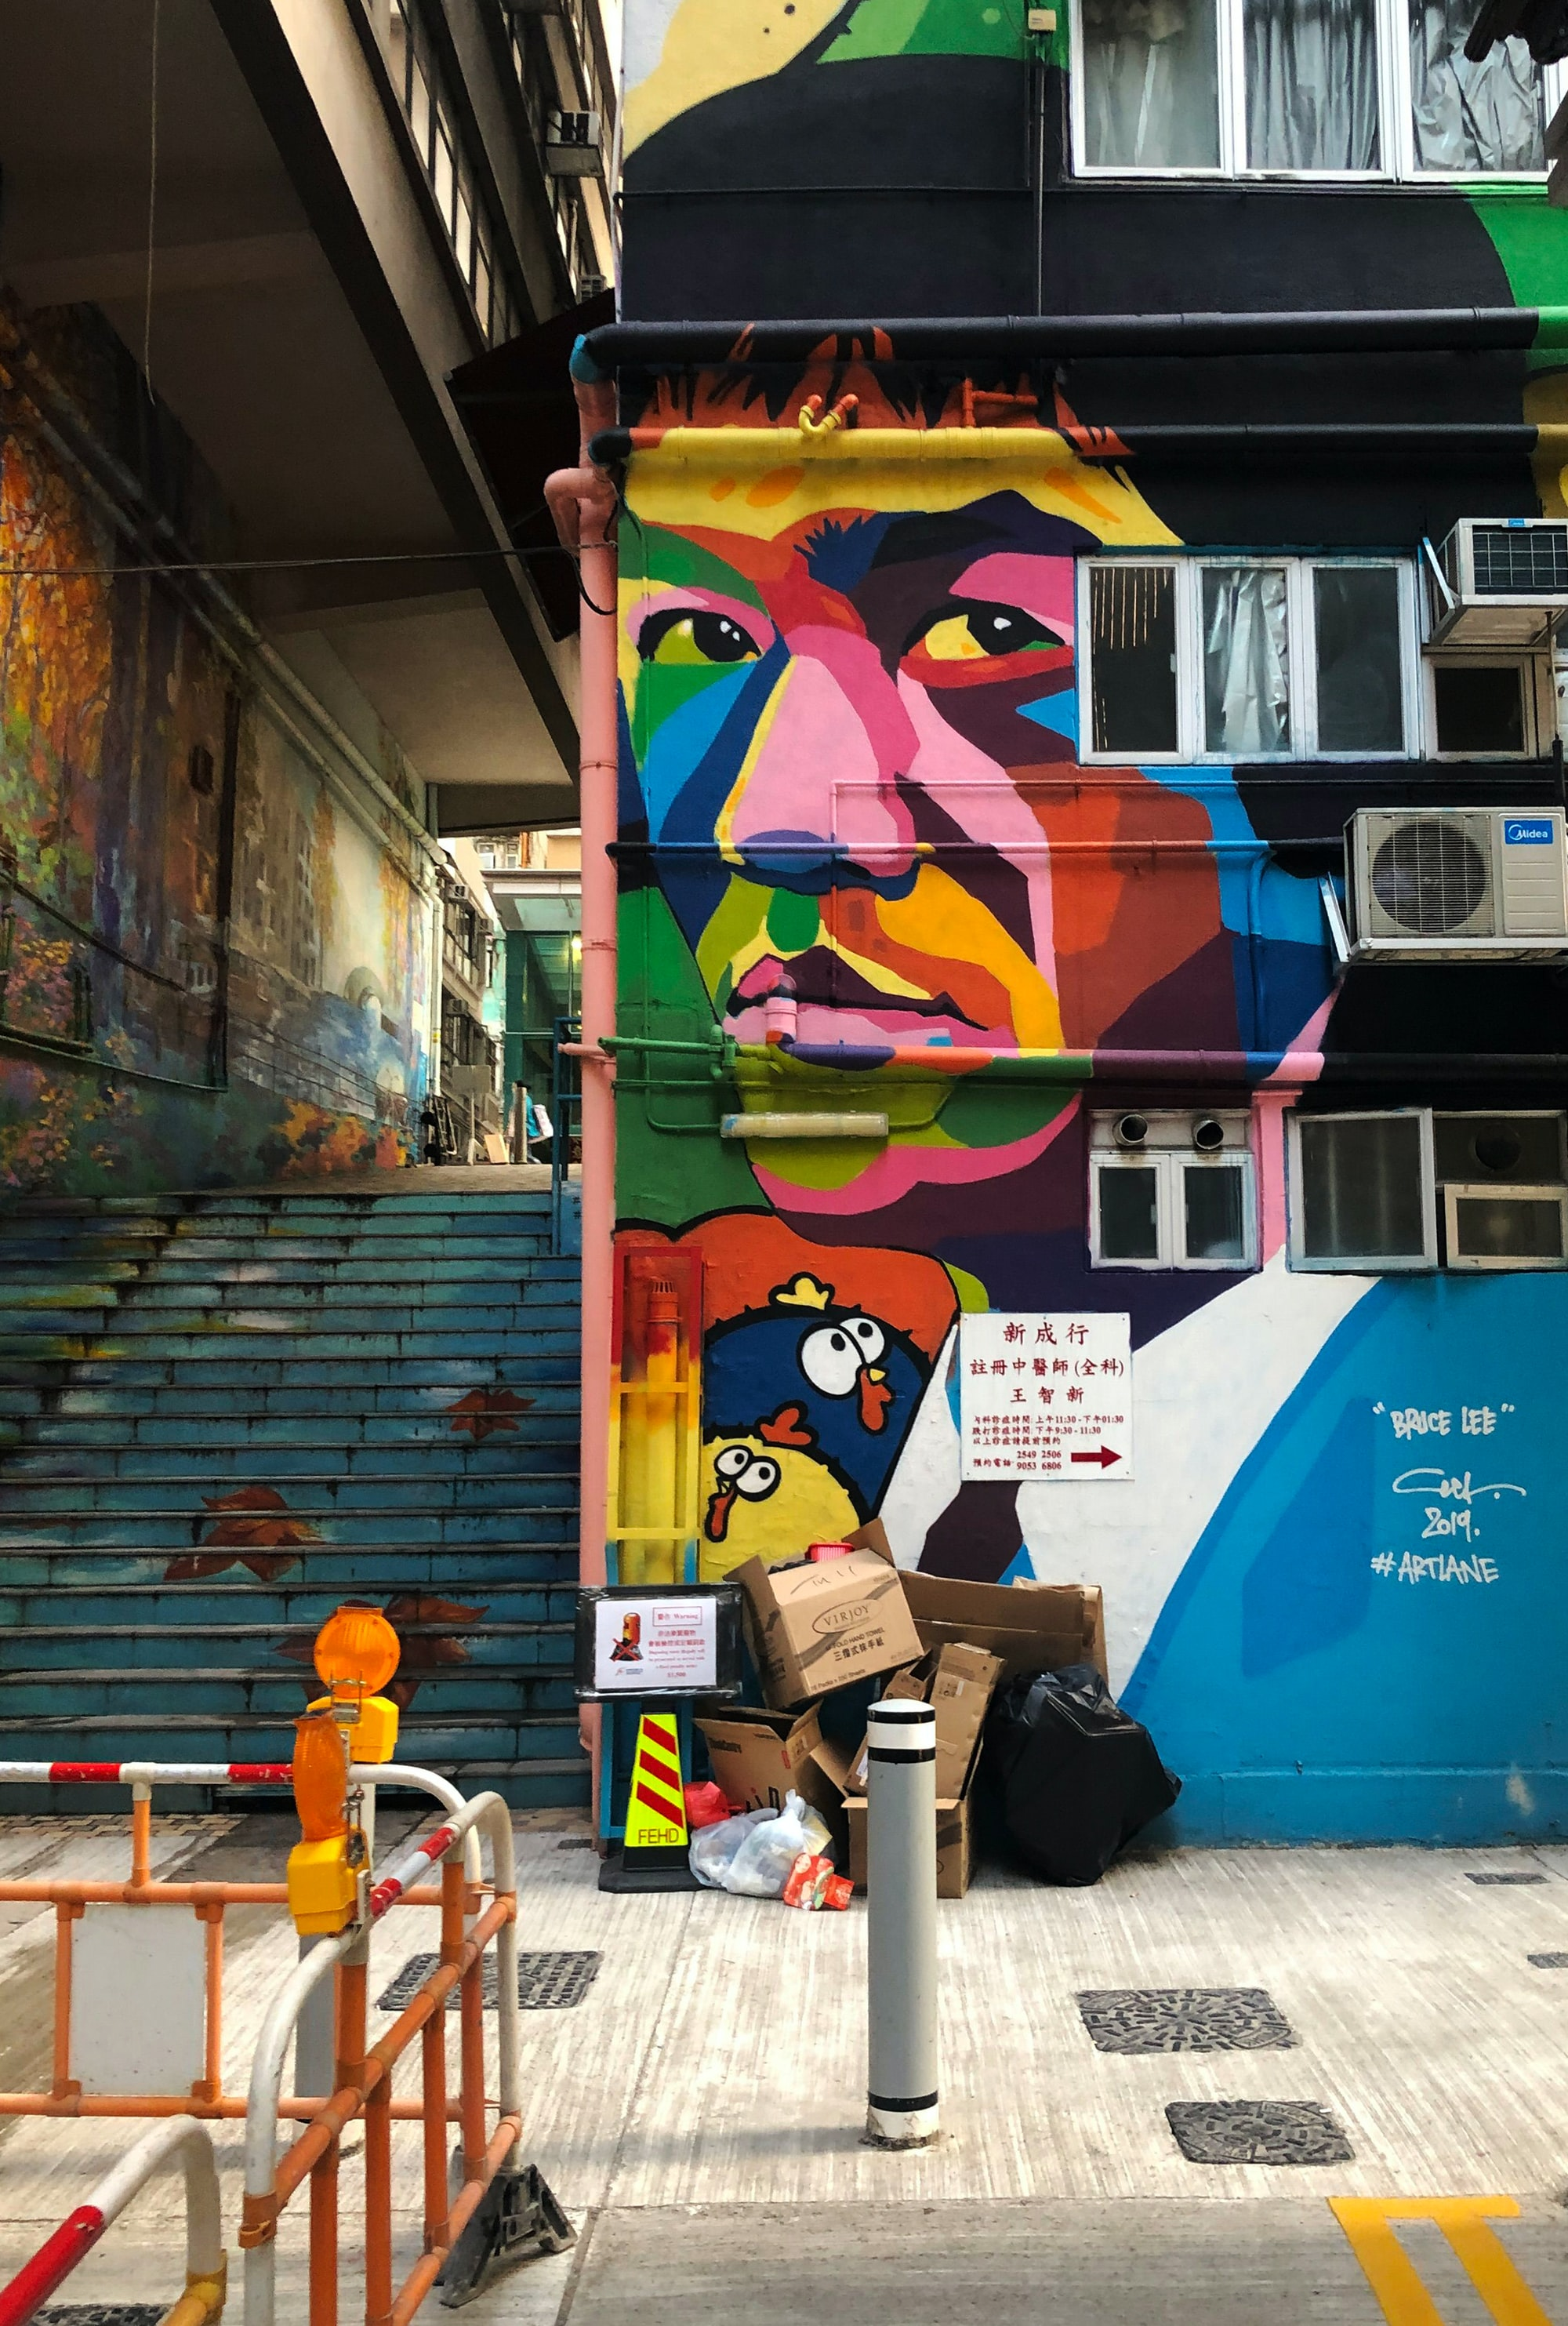 Artlane is a nice little space in Sai Ying Pun on Hong Kong island. It has really cool murals done by various artists.